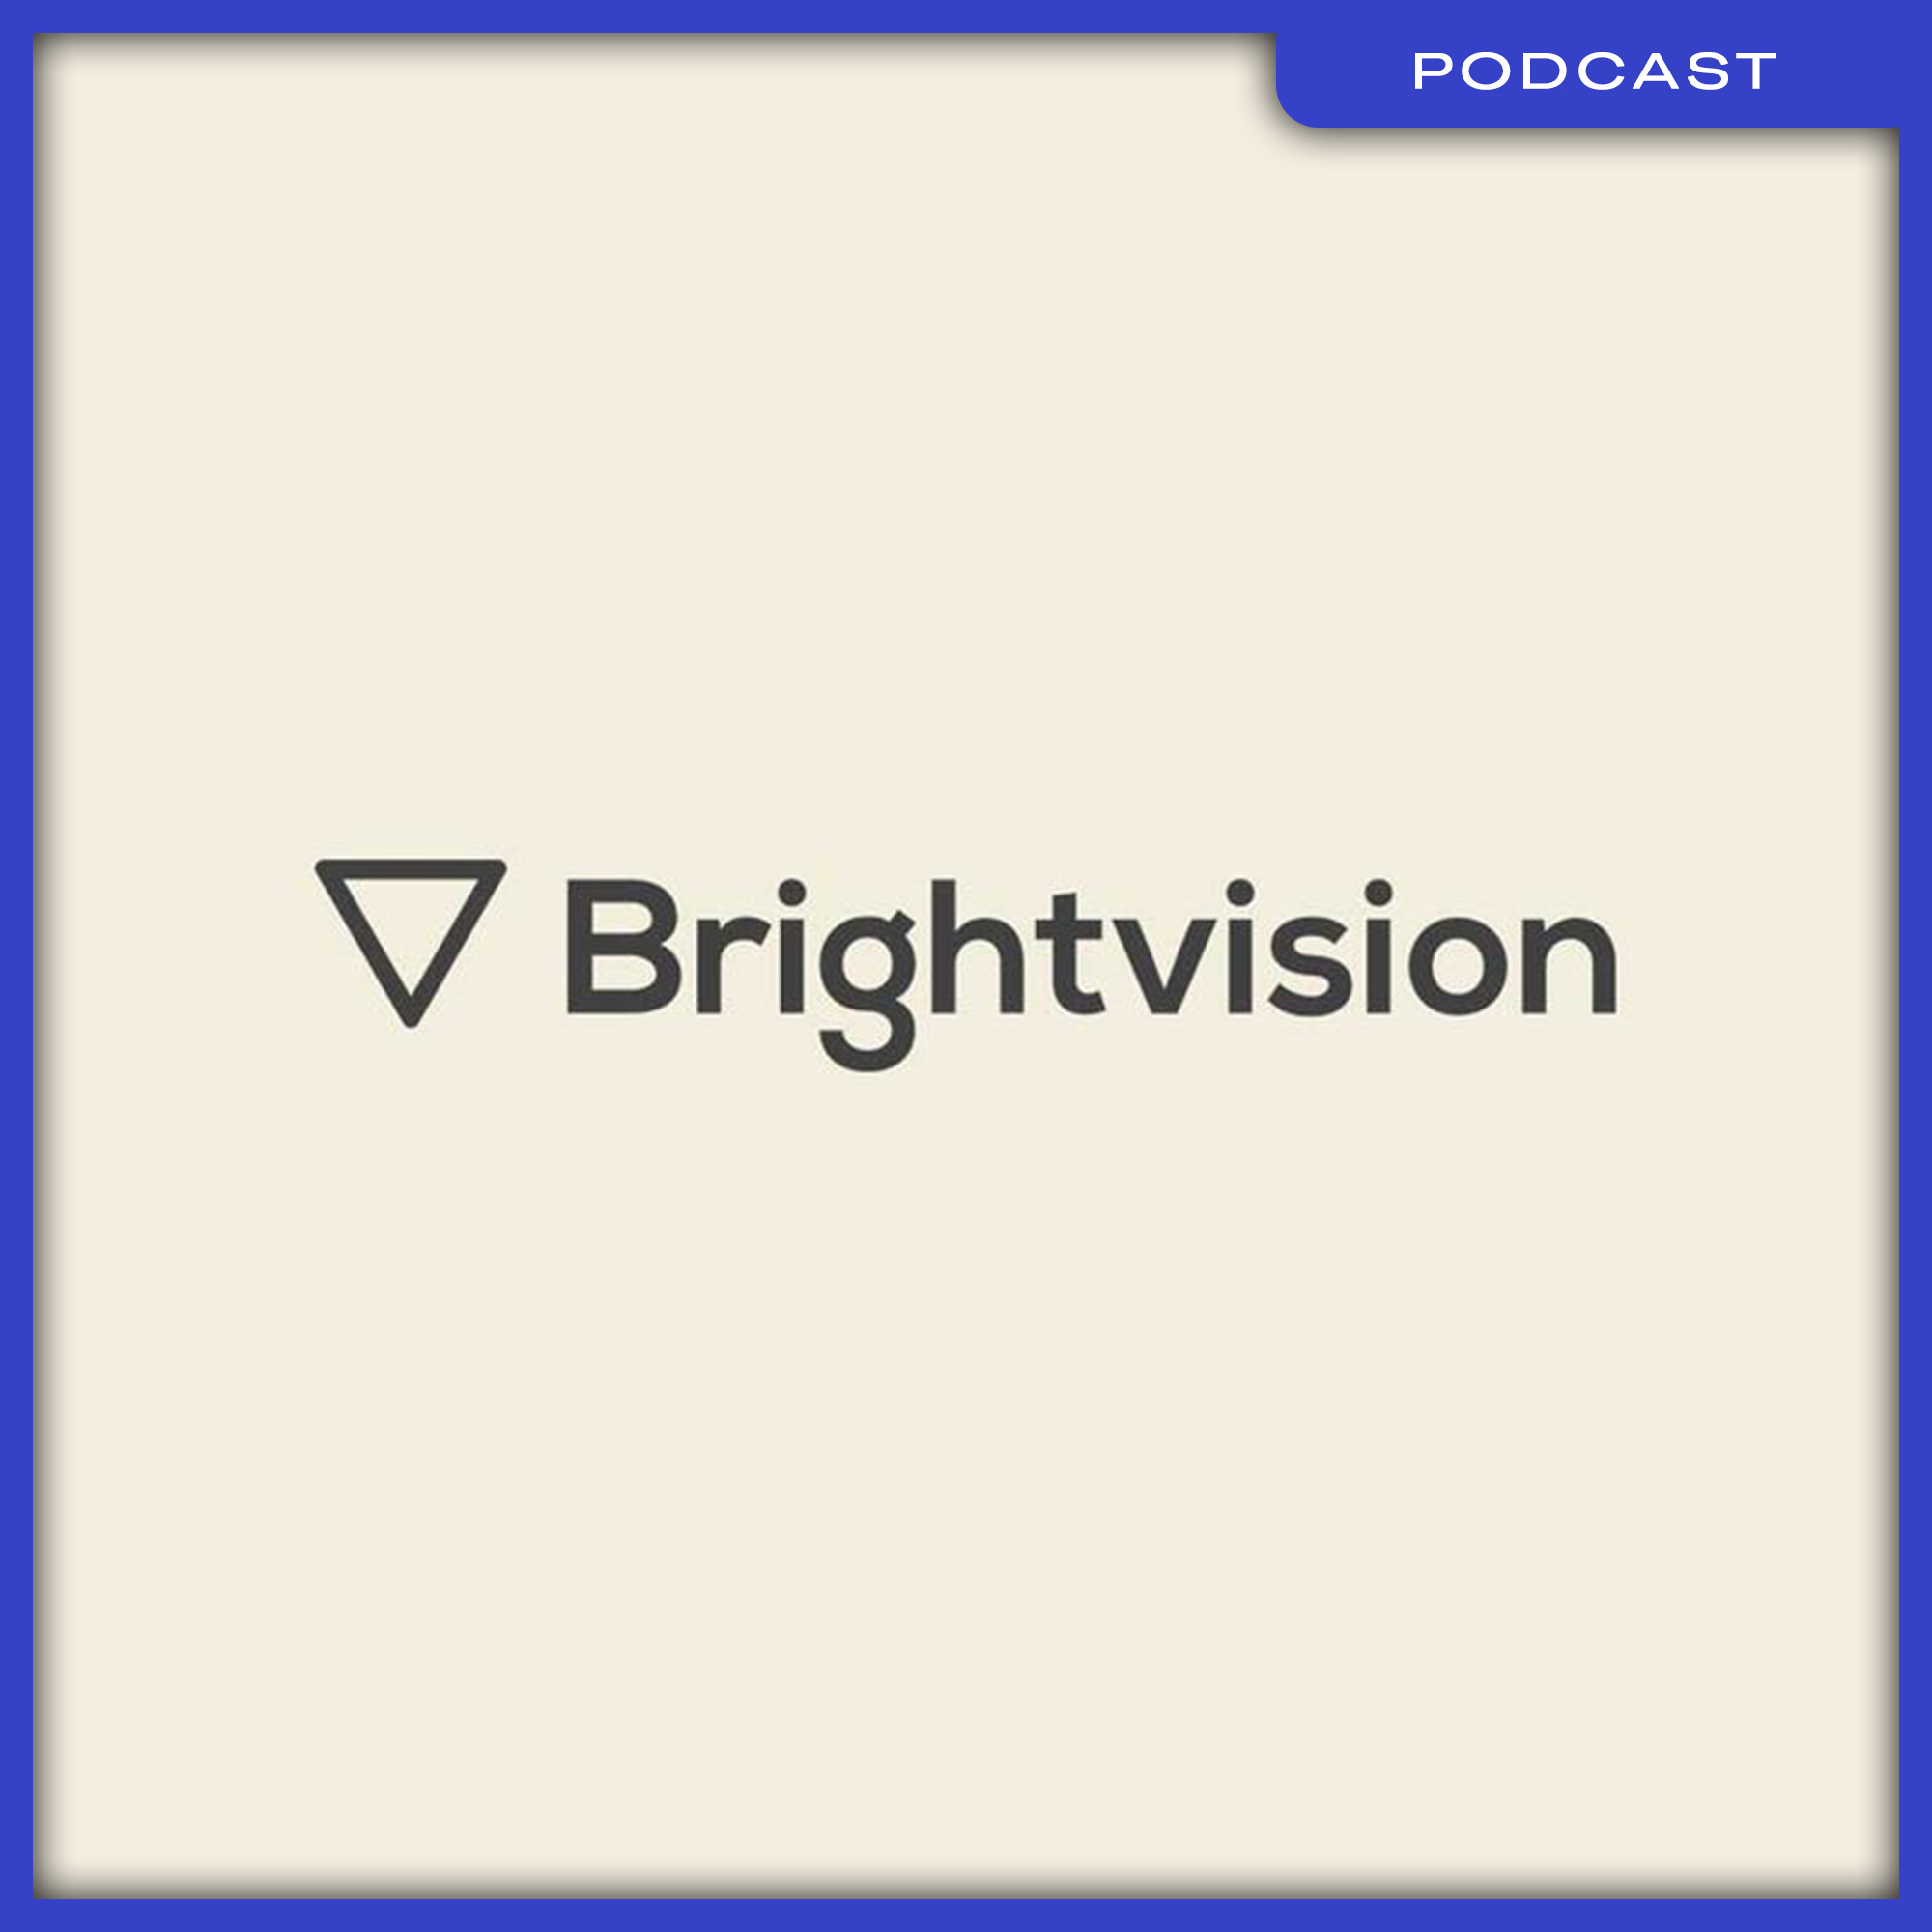 31_Podcast_Brightvision